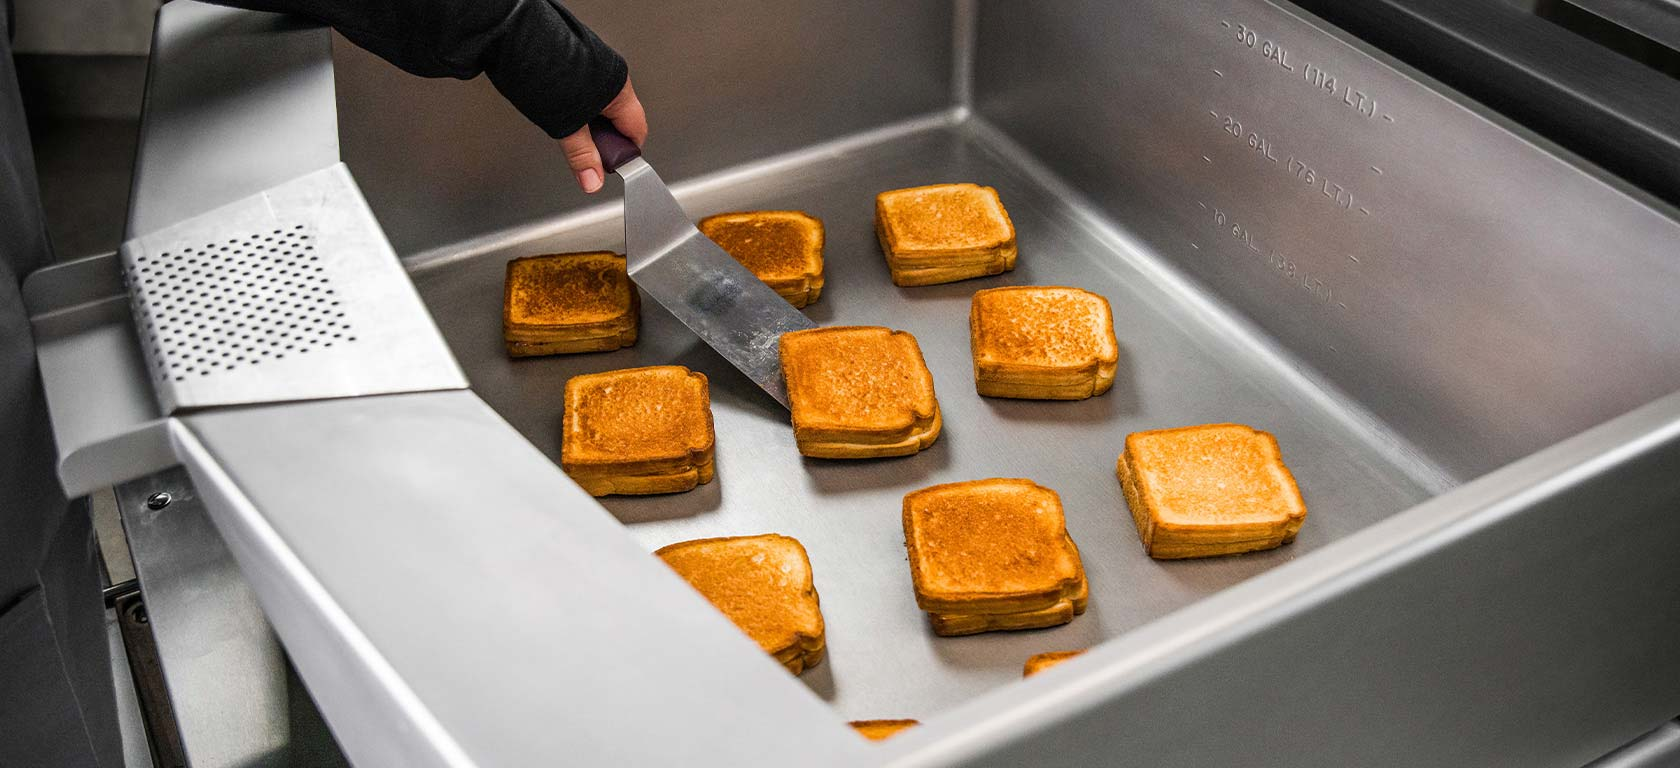 Grilled cheese being cooked on a braising pan.